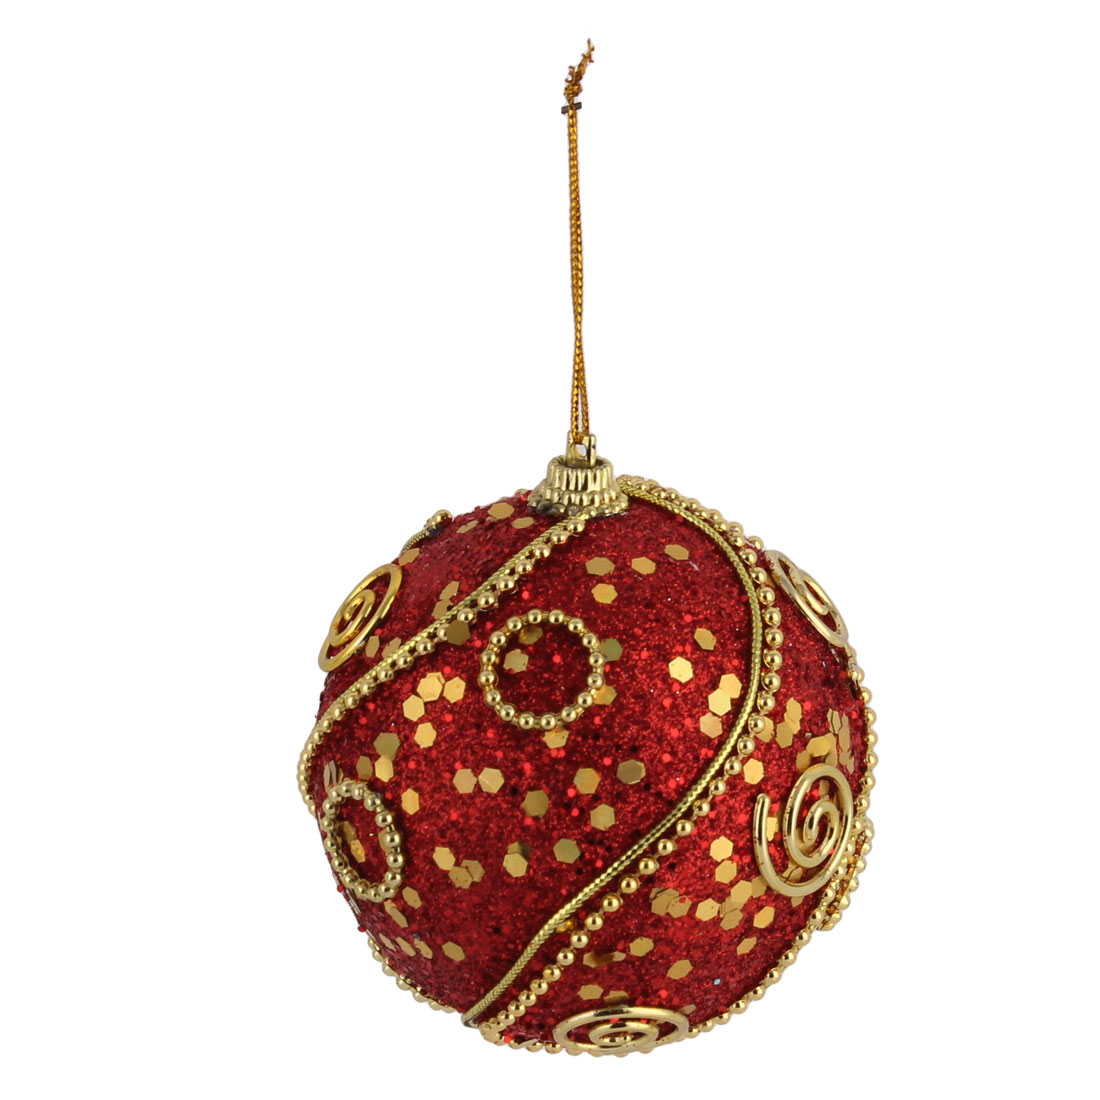 Household Christmas Tree Artificial Collectible Ornament Hanging Baubles Ball